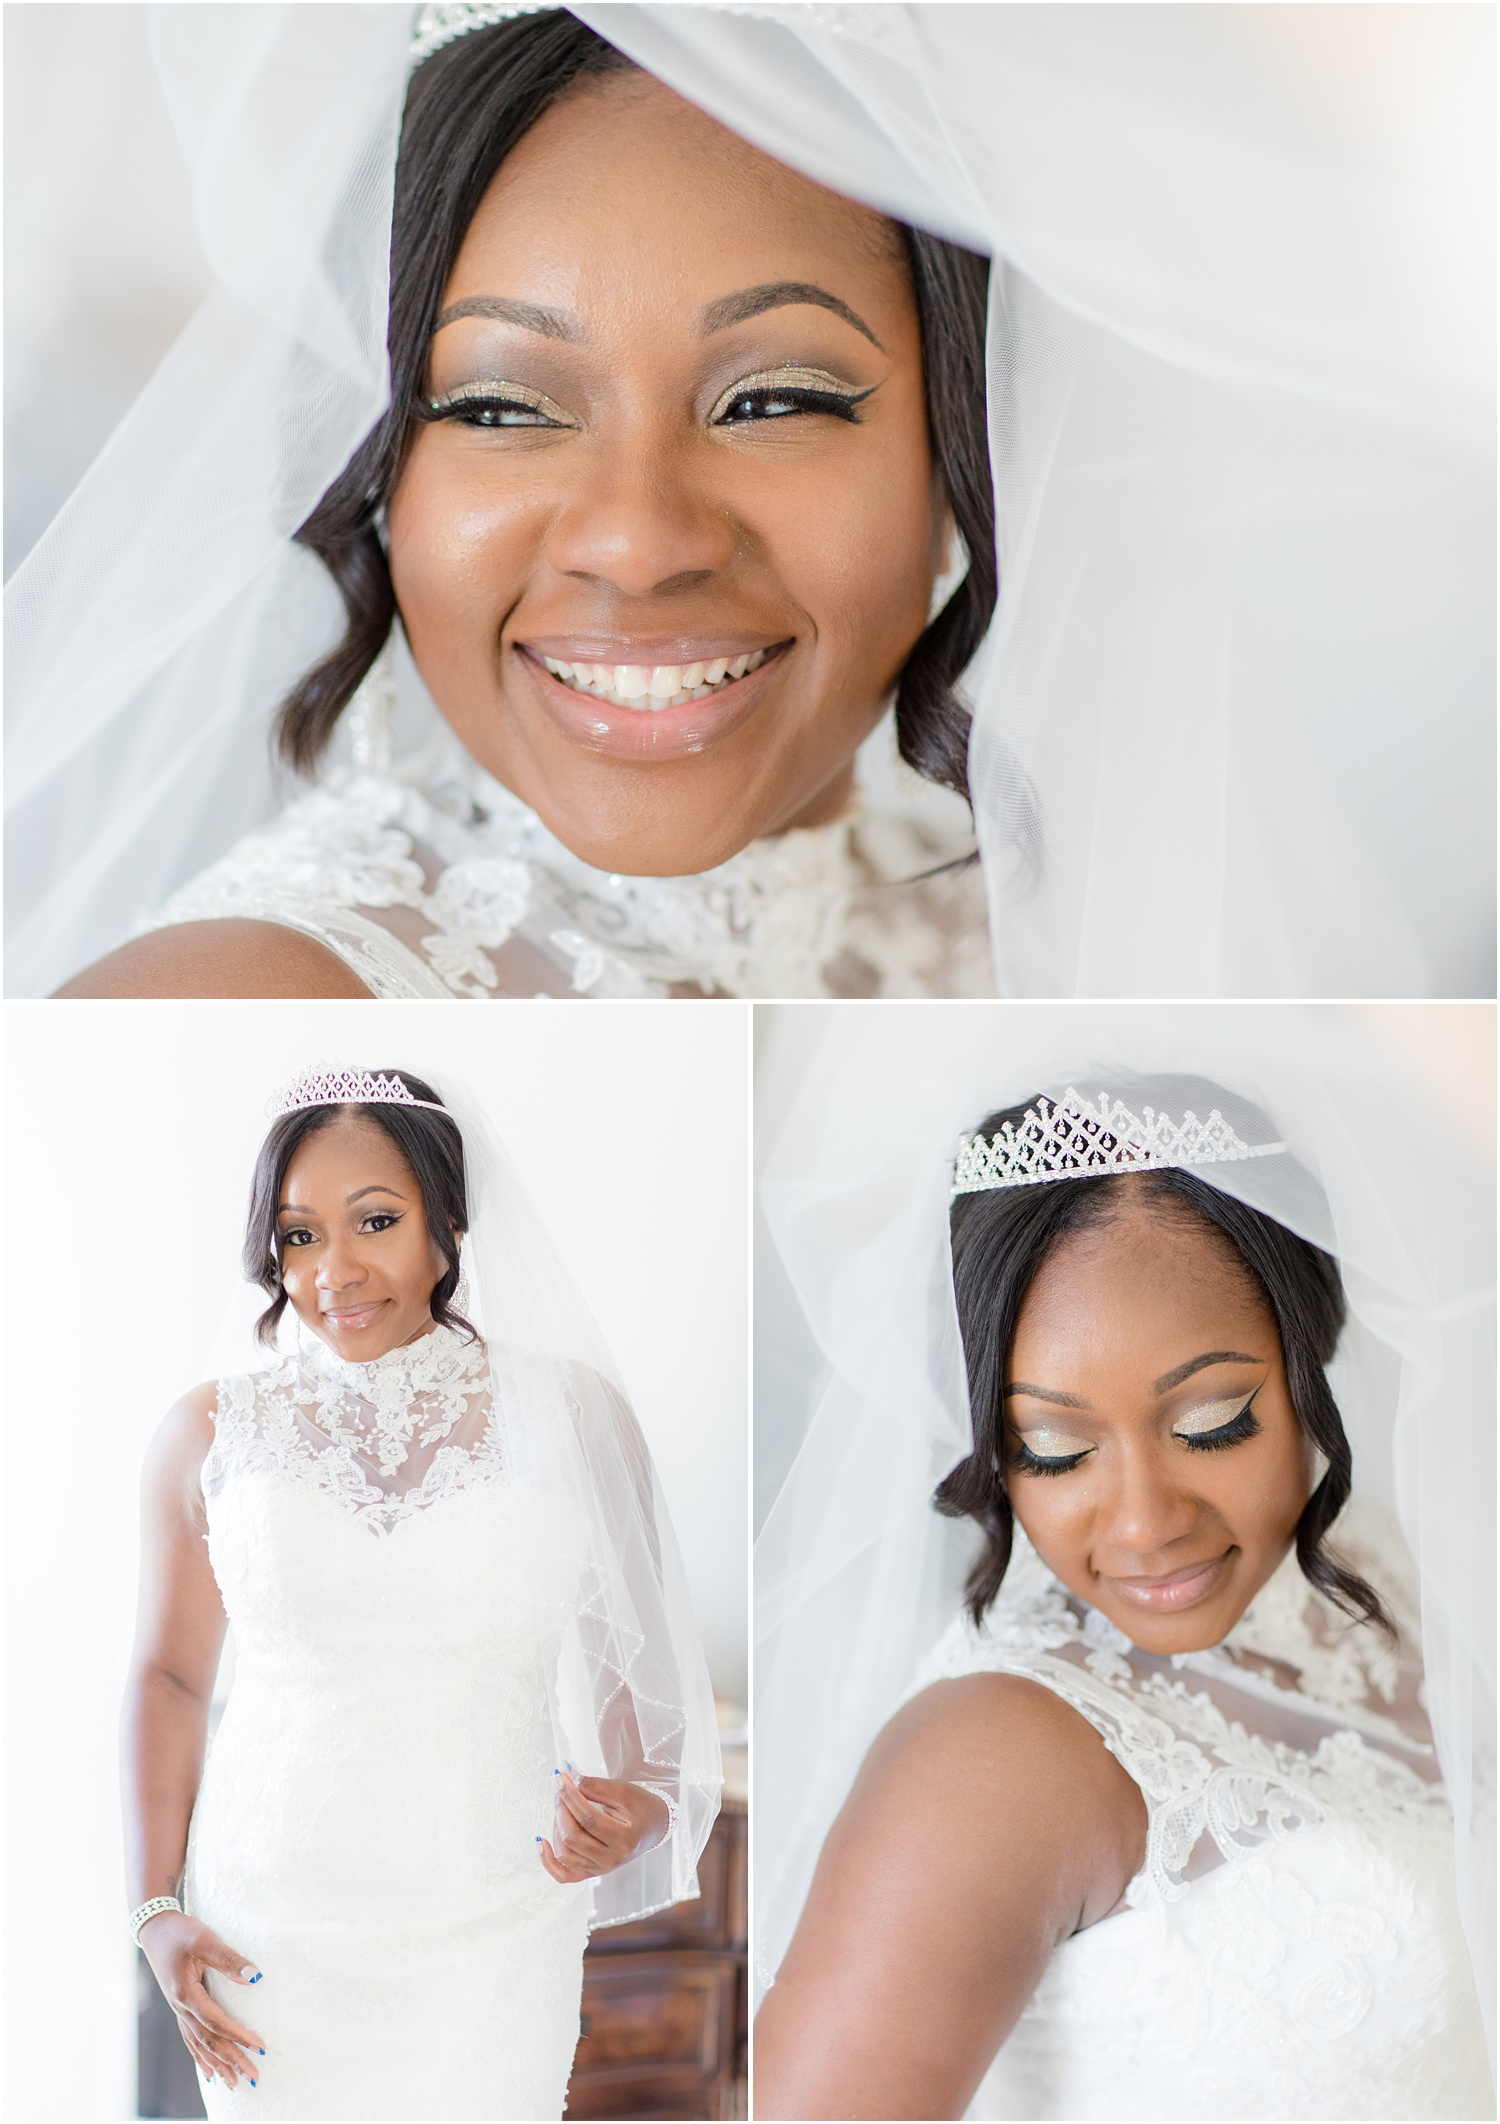 Bridal portraits with veil.